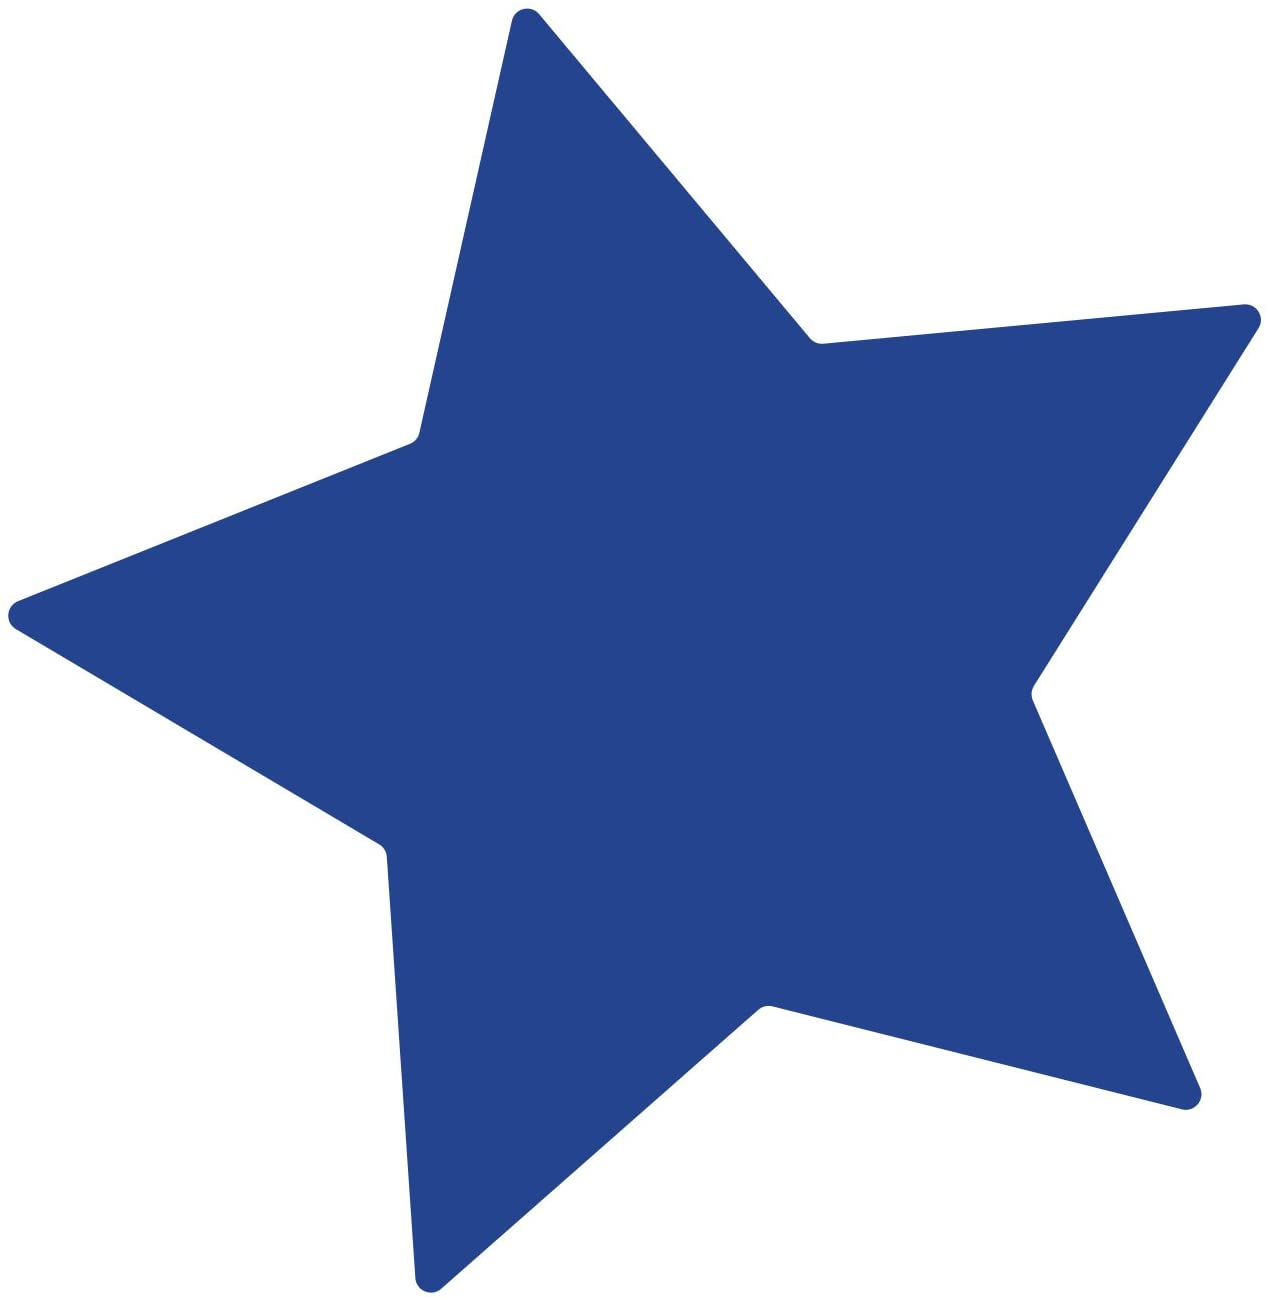 LiteMark Removable Blue 4 Inch Star Decal Stickers Walls, Ceiling Floor - Pack of 15